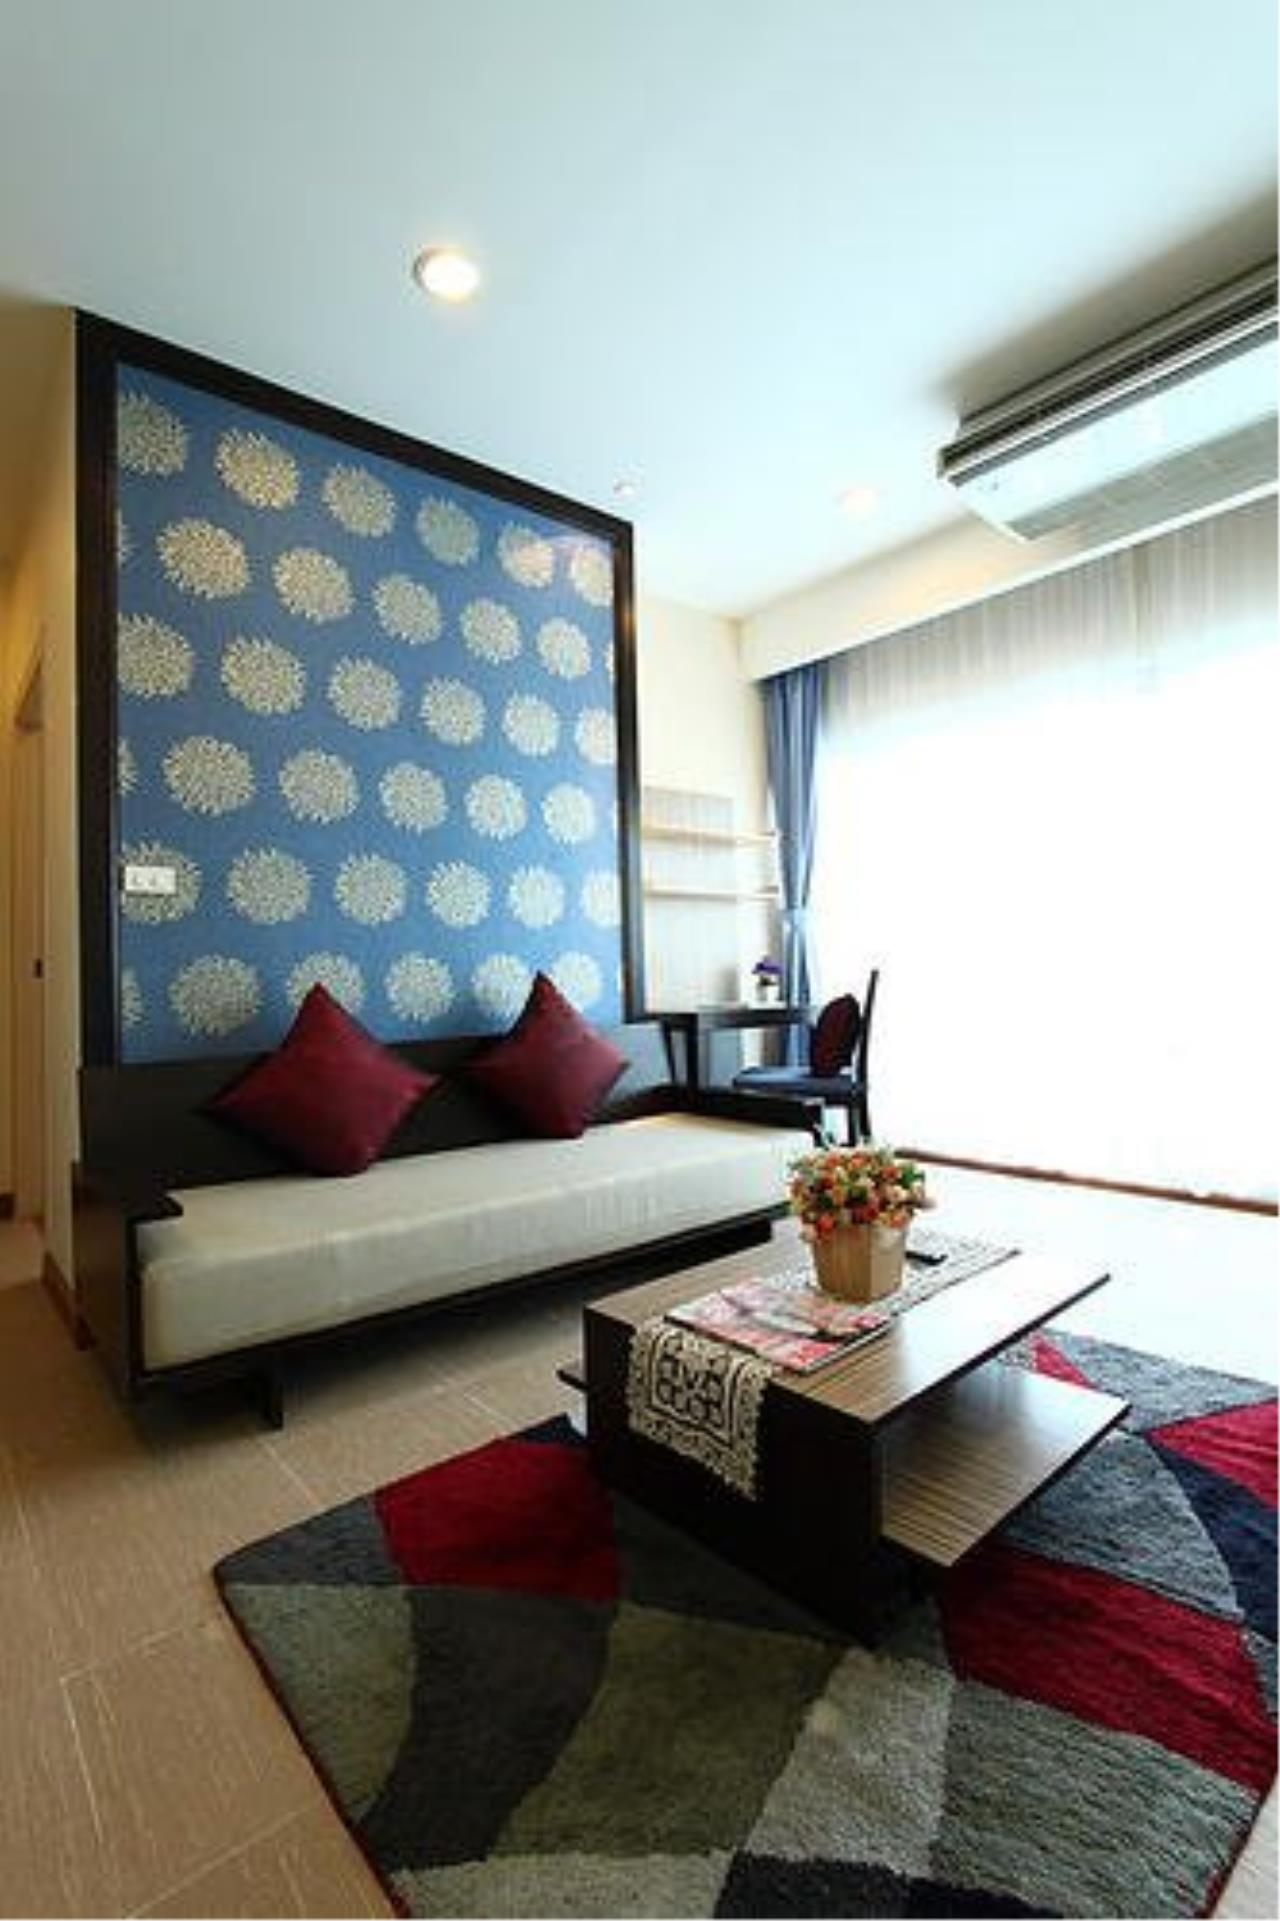 Piri Property Agency's Spacious 1 Bedroom in the Sarin Suites Building for rent 3